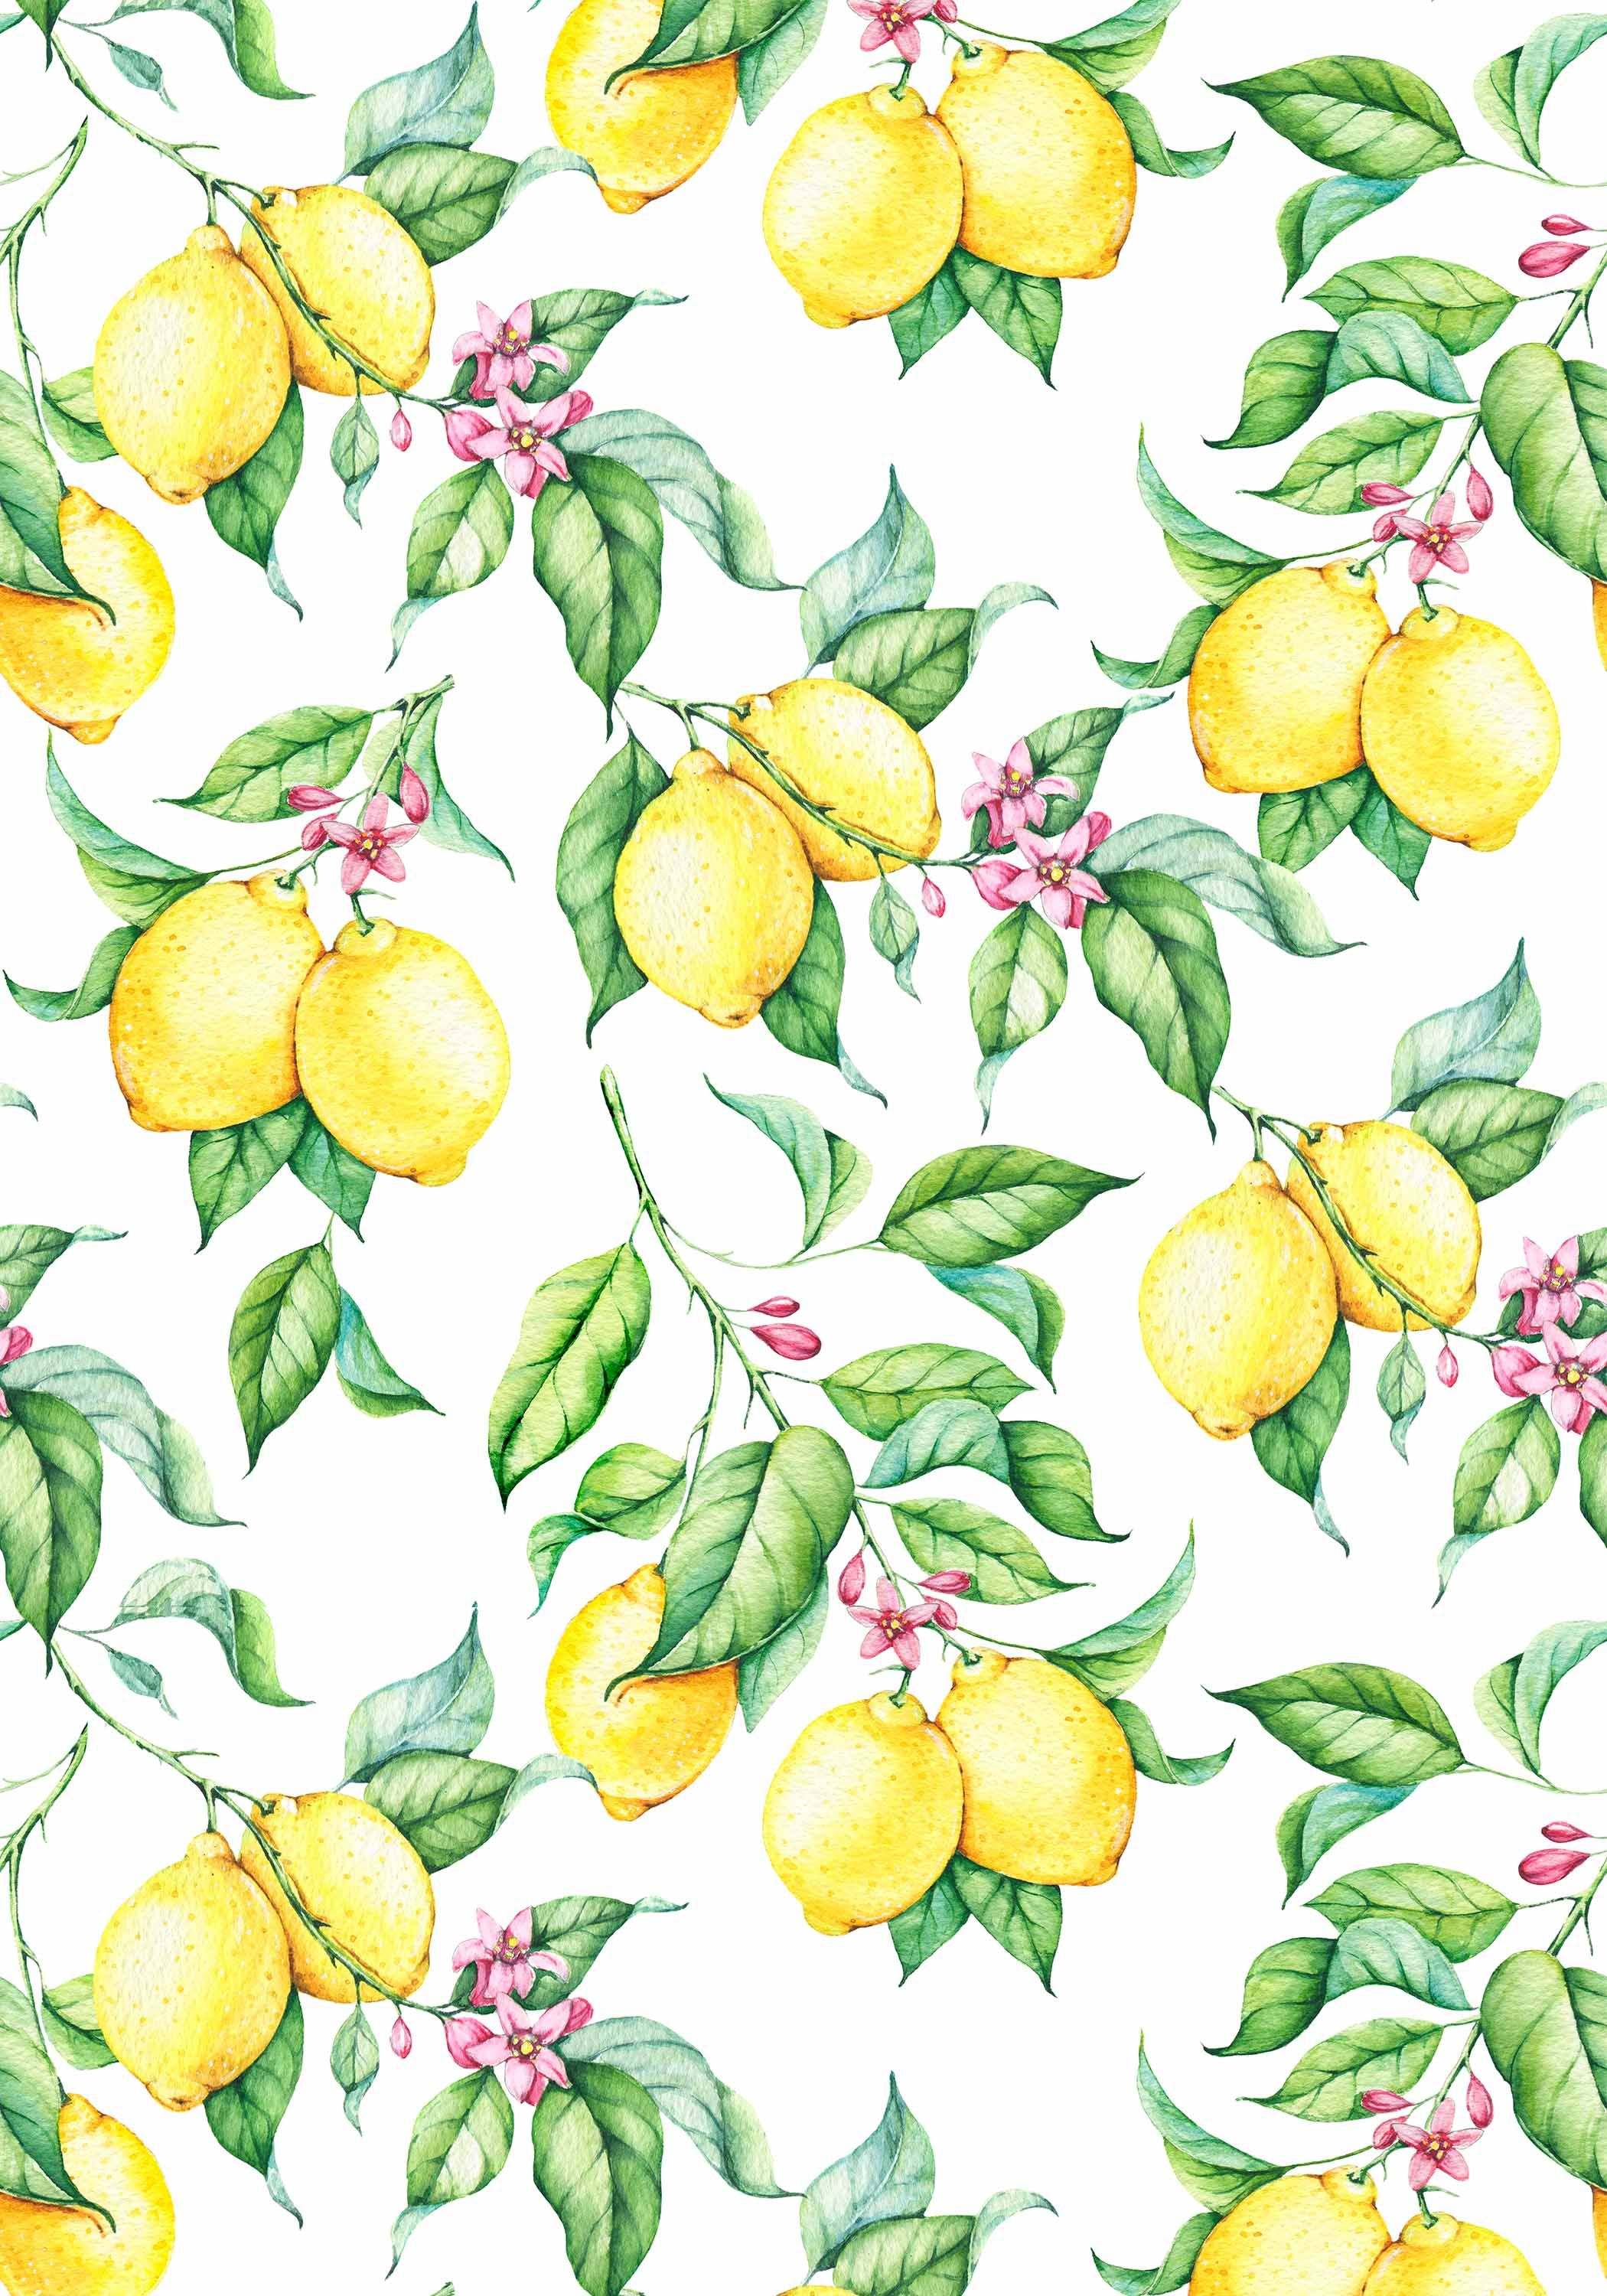 Watercolor Lemons Wall Covering Peel And Stick Wallpaper By Green Planet Print Paper Wallpaper Special Wallpaper Brick Wall Drawing